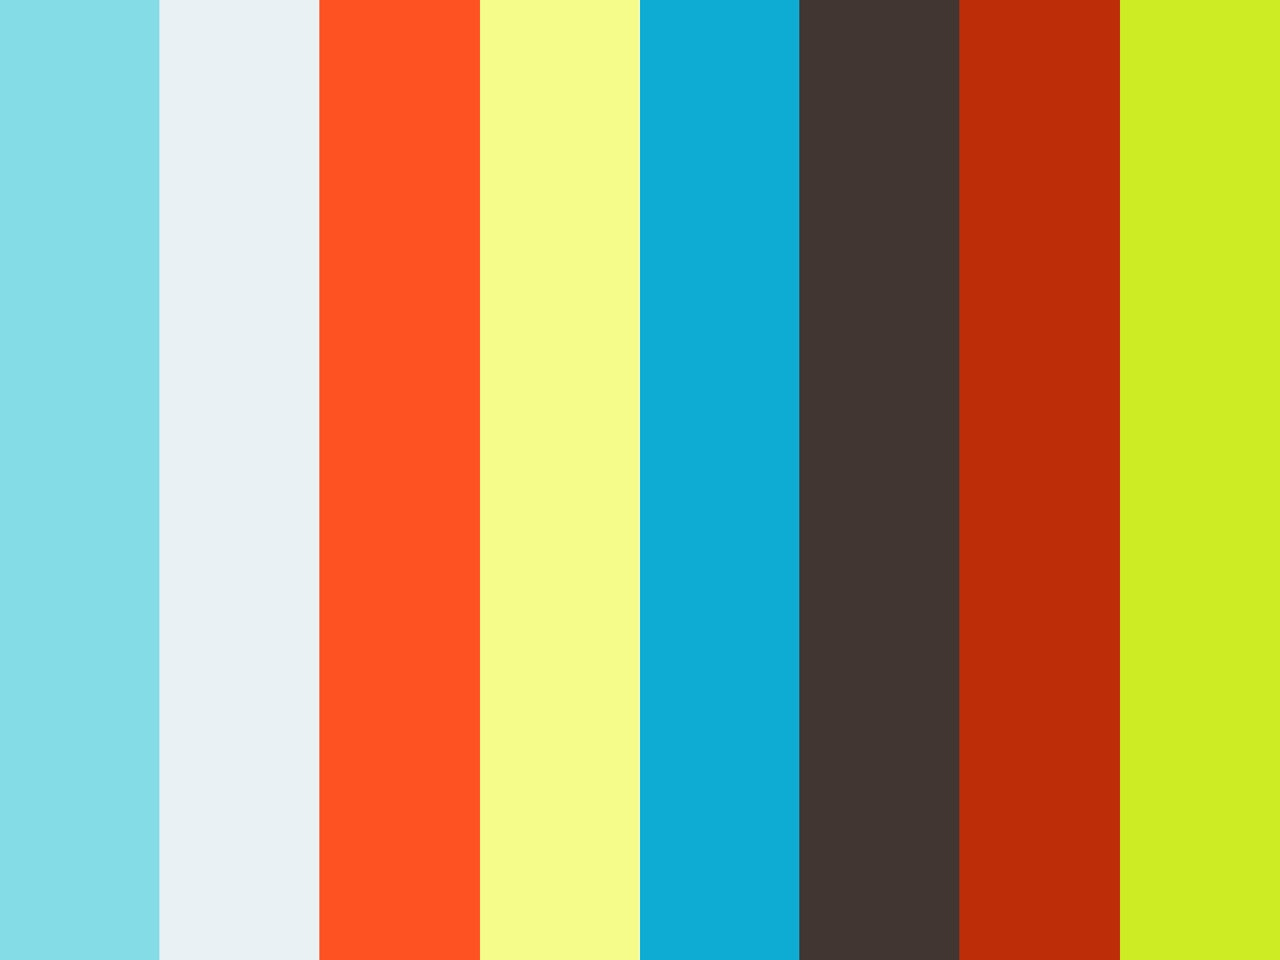 Worksheets Compound Inequalities Worksheet compound inequalities on vimeo